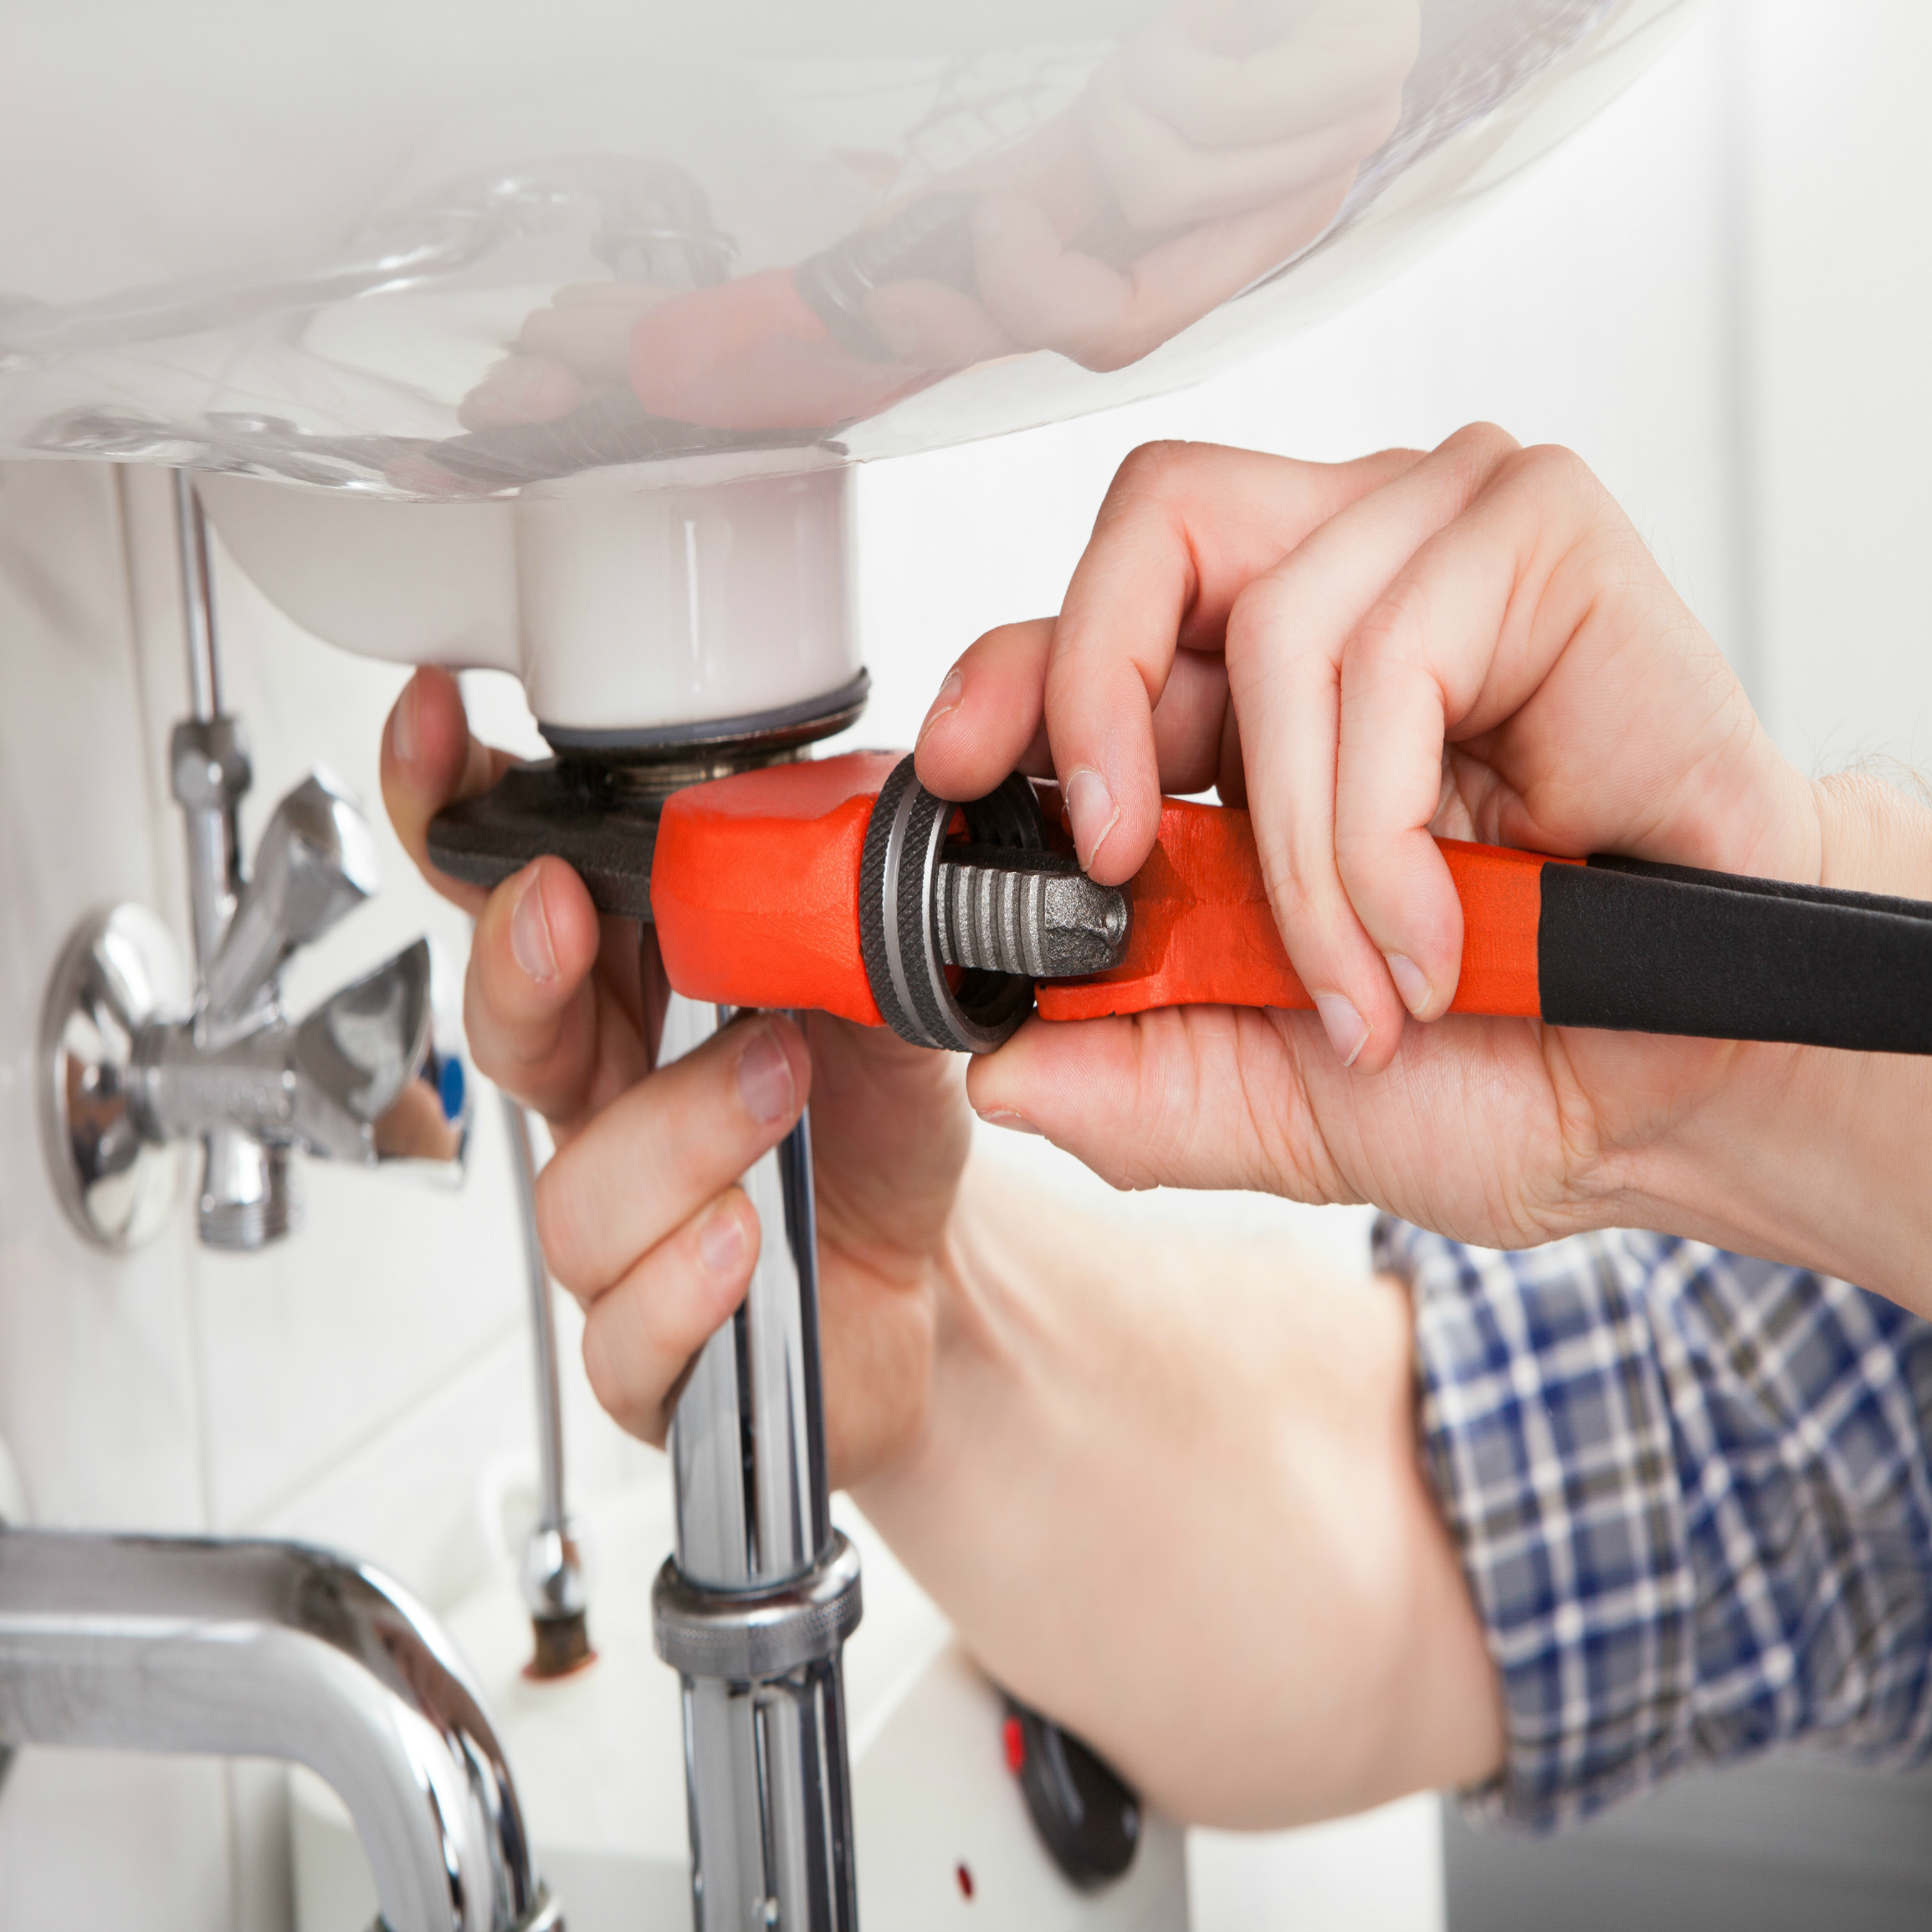 M J Electrical Plumbings Services